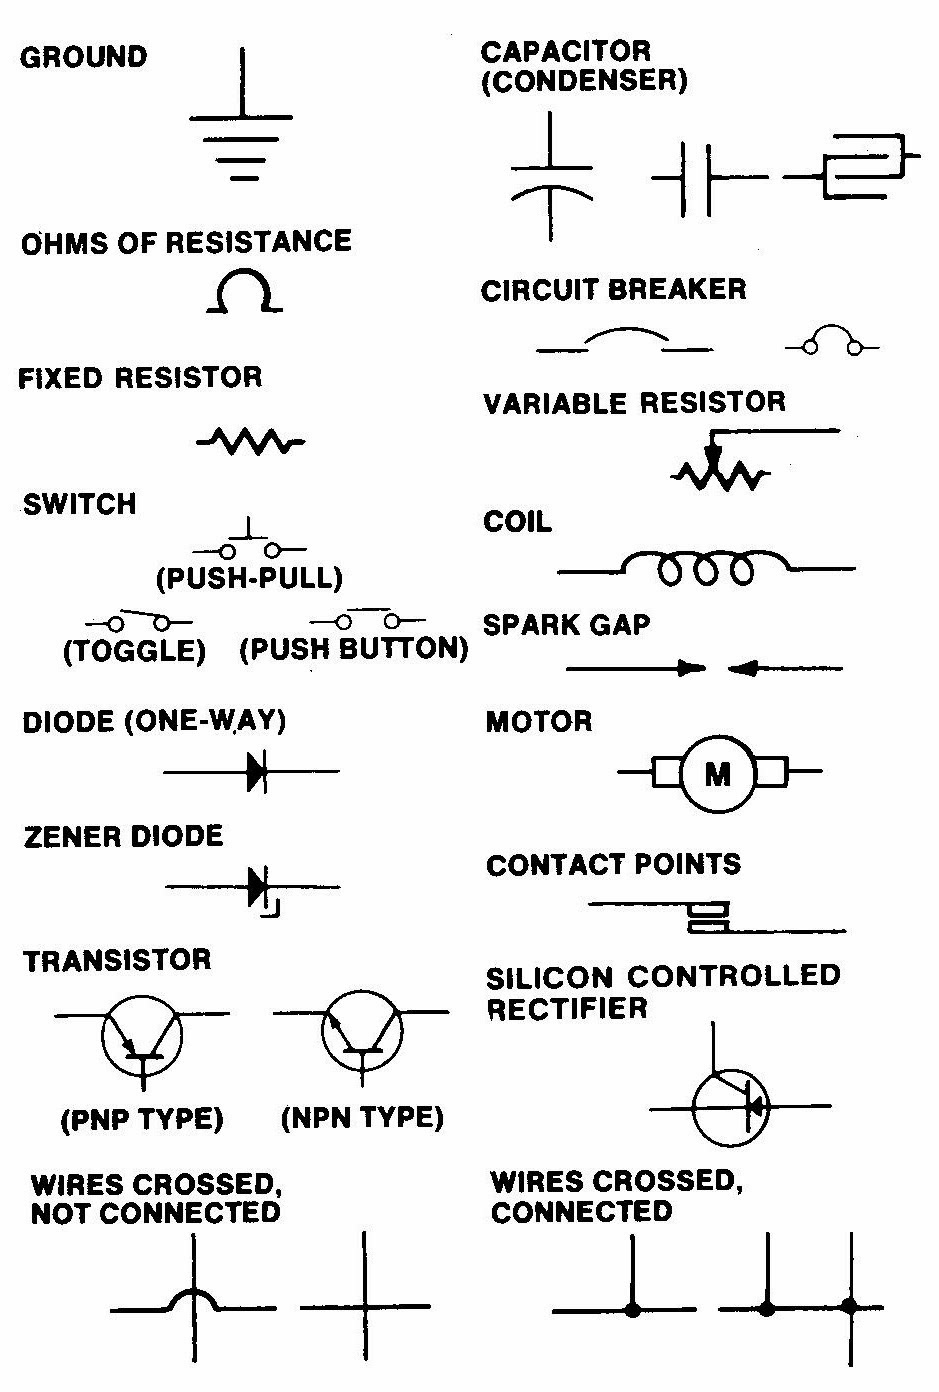 Common+Car+Electrical+Diagram+Symbols fundamentals to understanding automobile electrical and vacuum how to read automotive wiring diagrams symbols at reclaimingppi.co